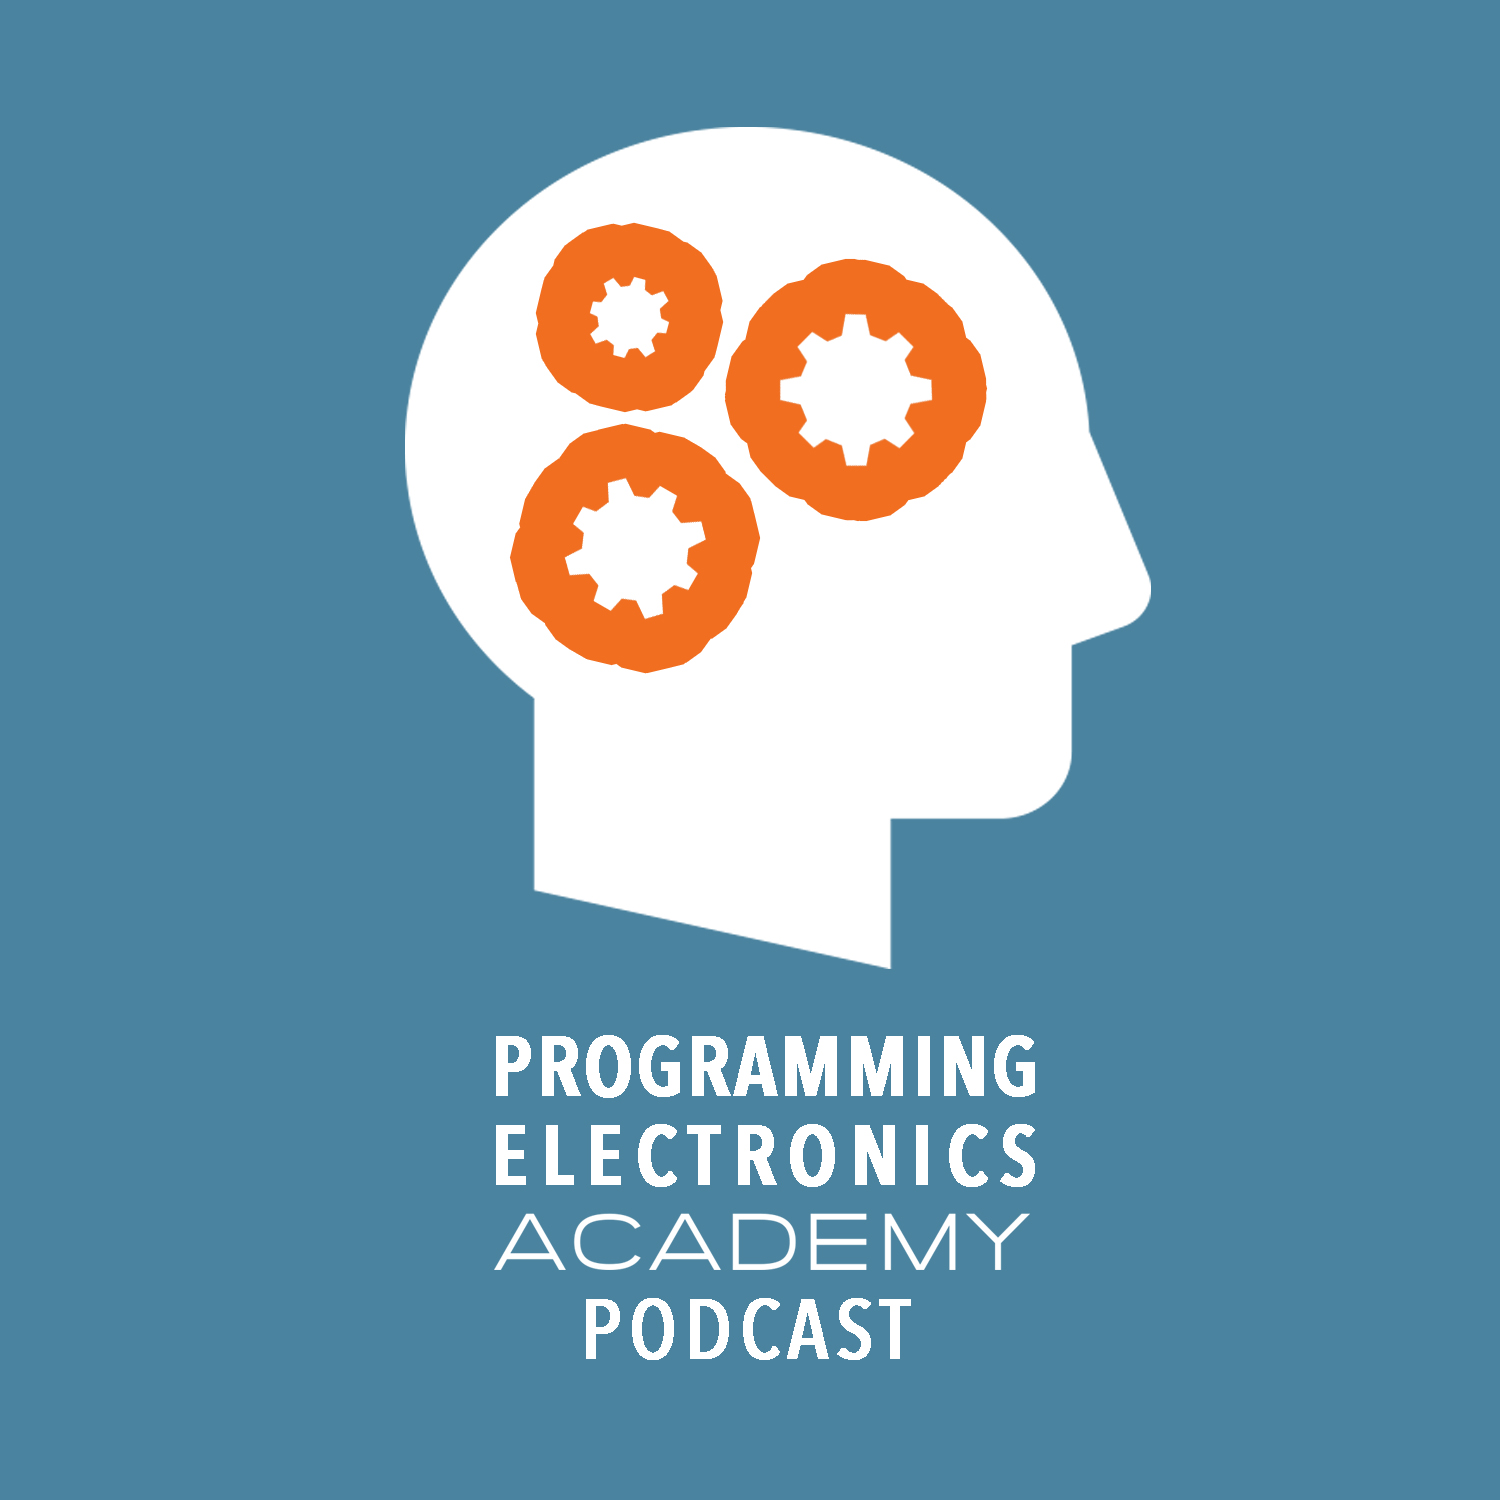 EP 029 Getting a Job as a Software Developer with Mical Juhas